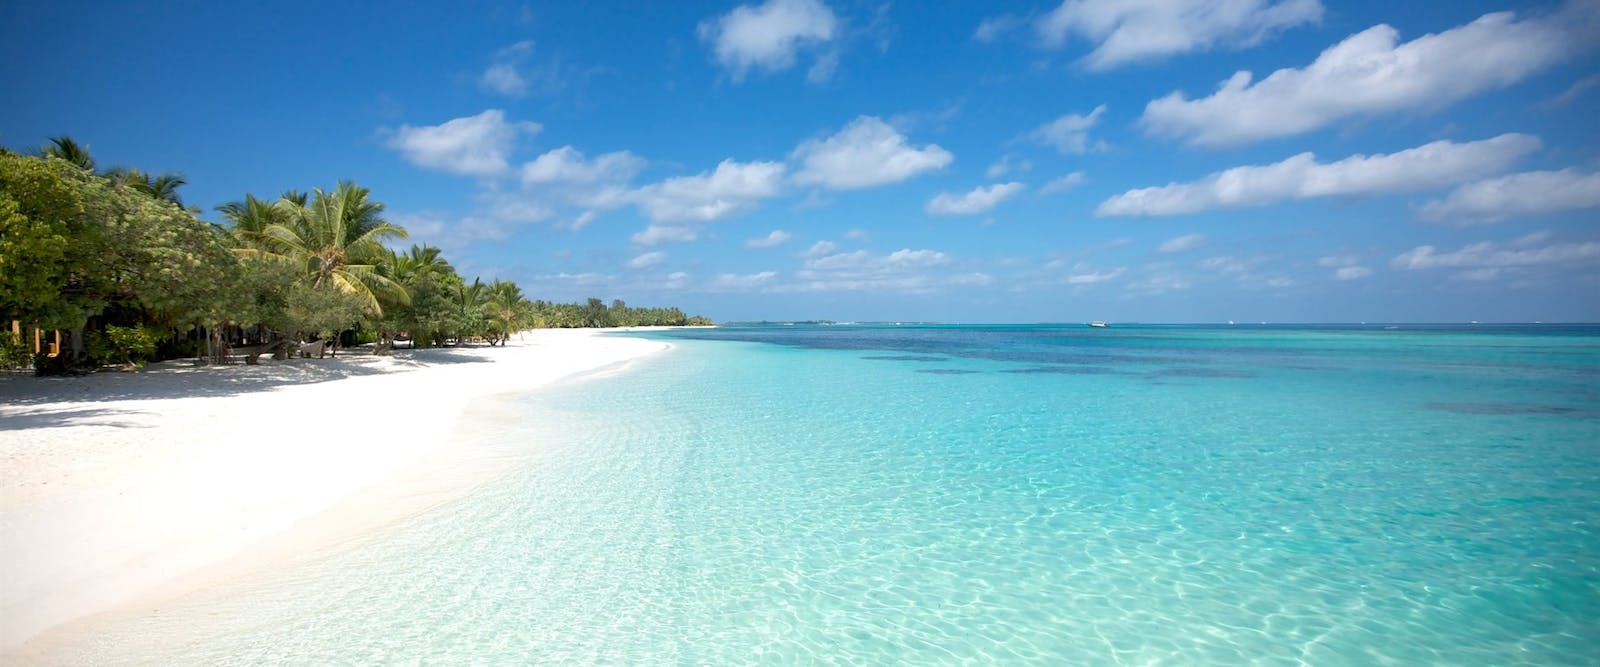 The Beach at LUX* South Ari Atoll, Maldives, Indian Ocean